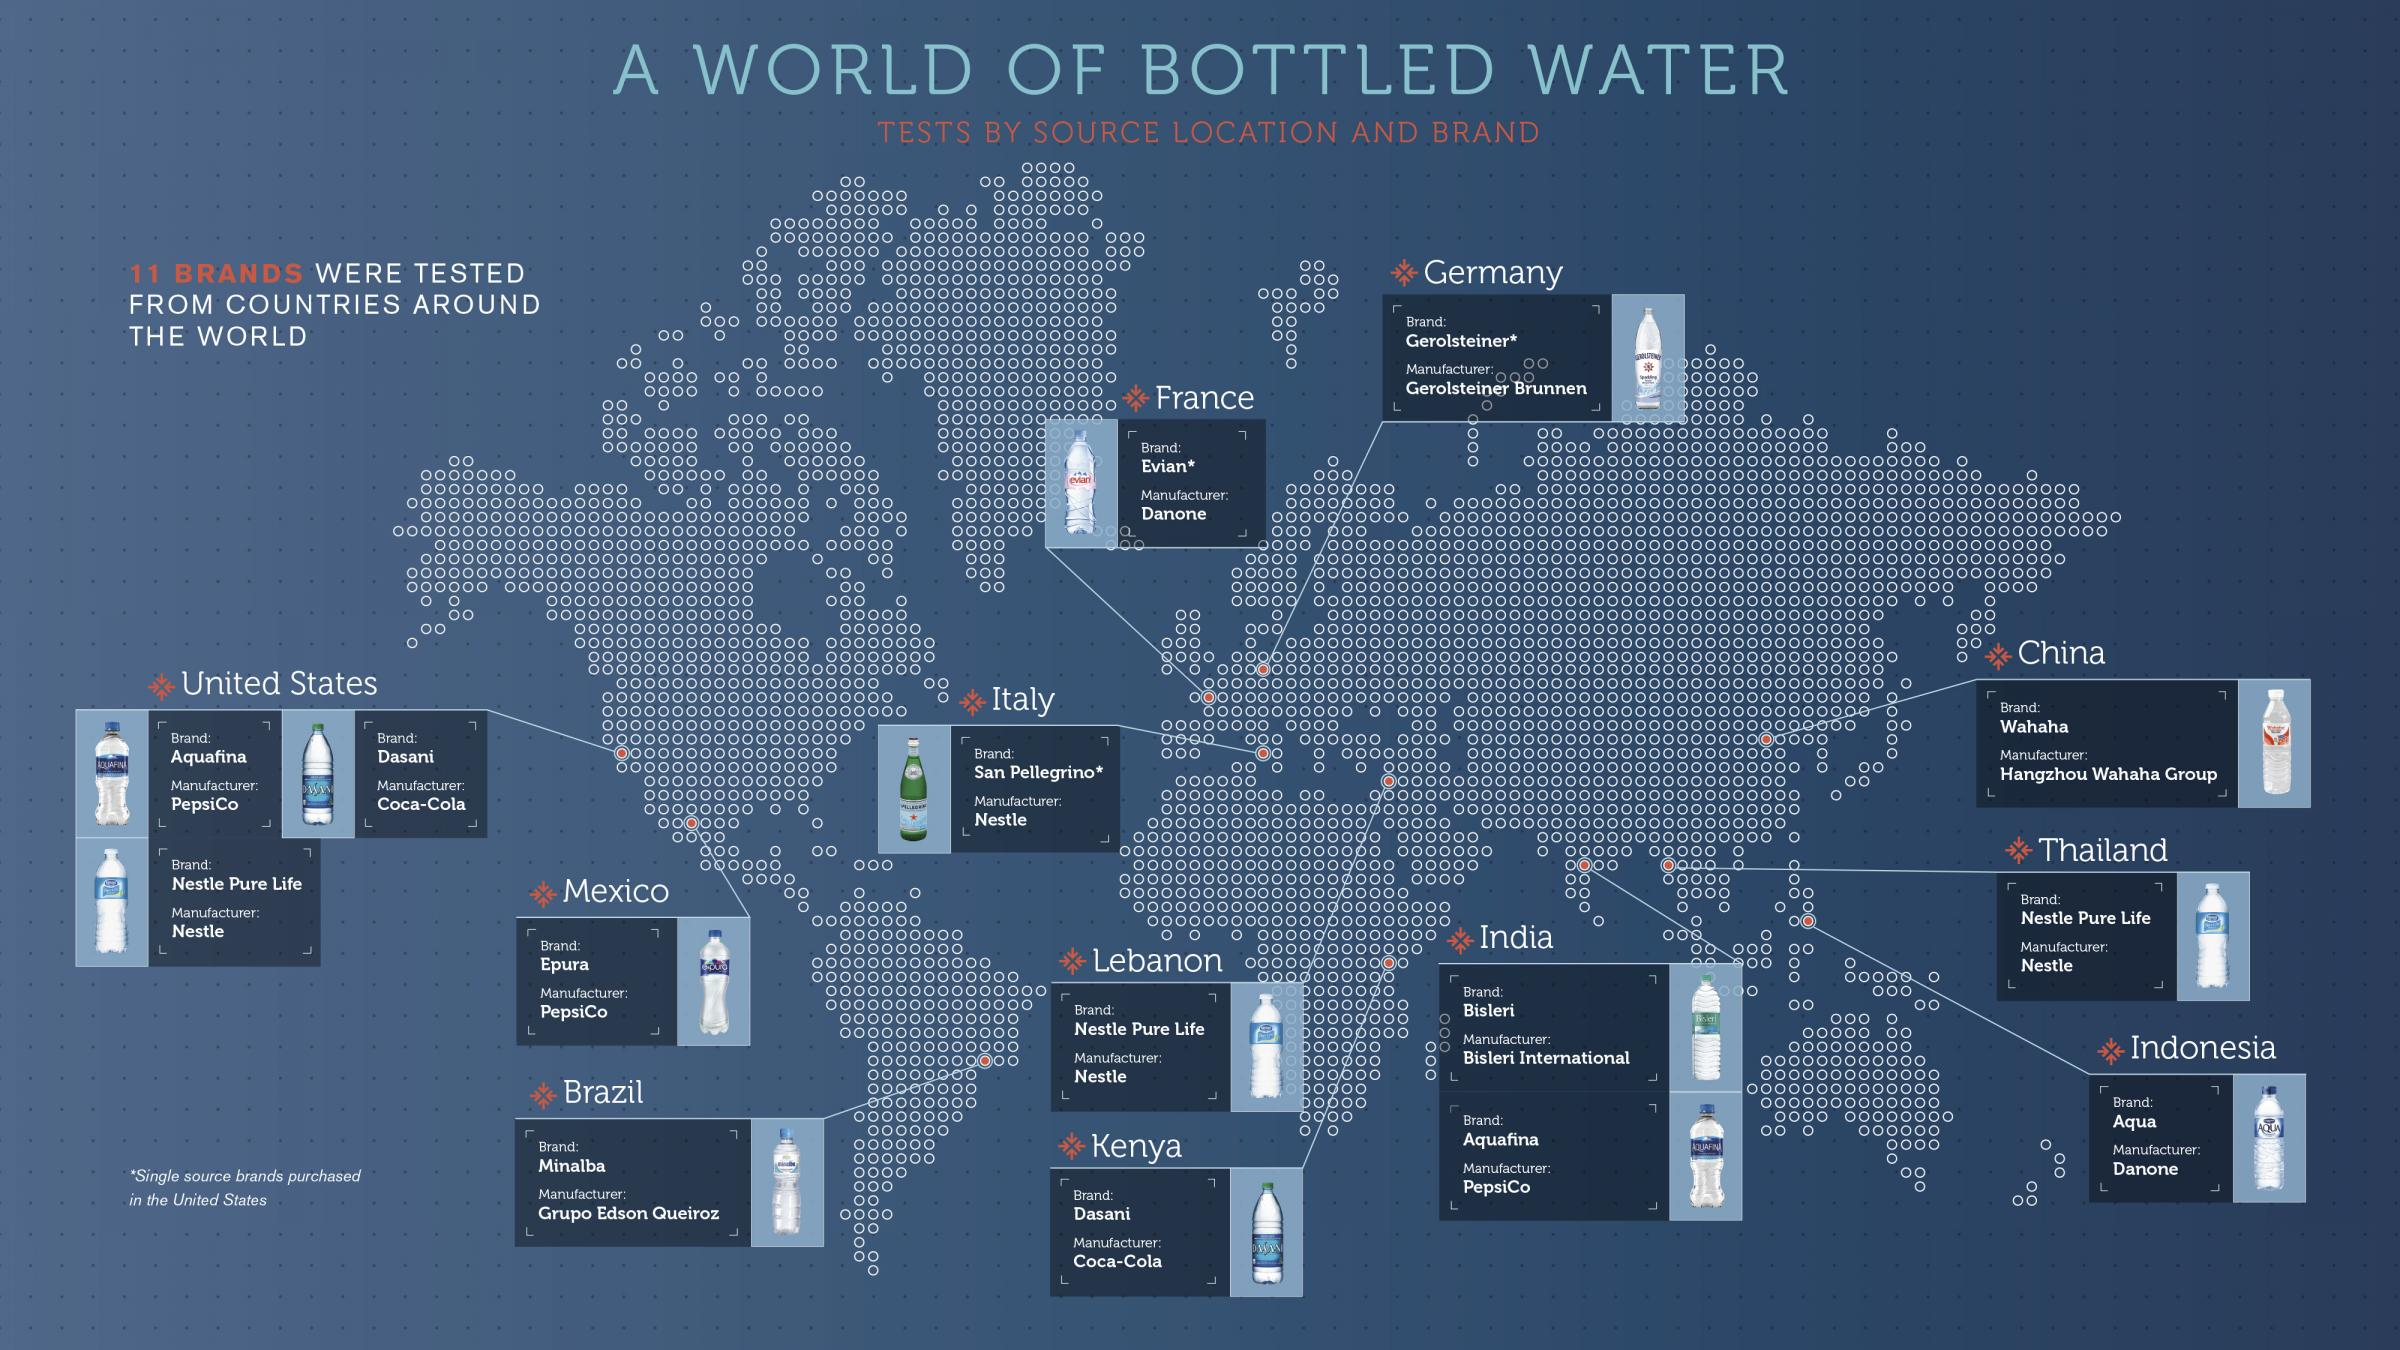 tests show microplastic in 11 water brands from around the world